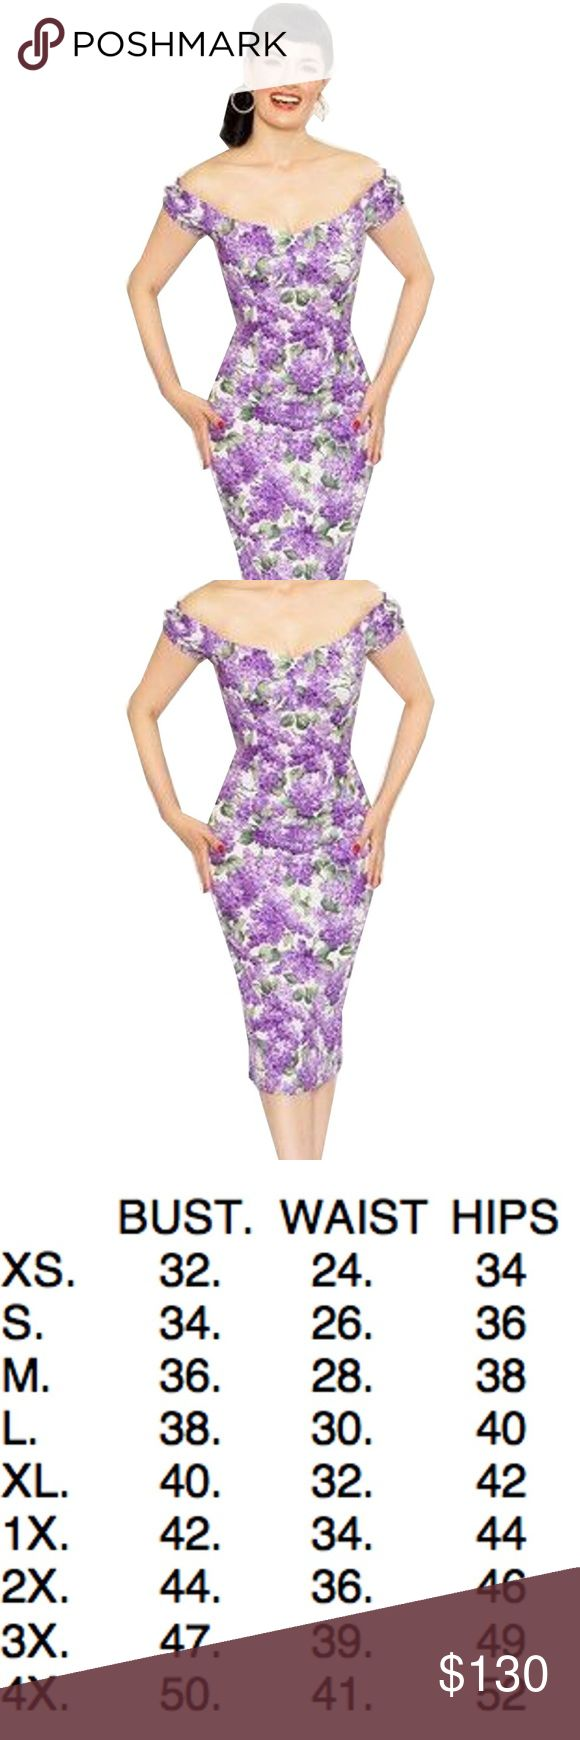 Bernie Dexter Scarlett Dress in Lilac Print Scarlett Pin Up Dress in white lilac Print. It is made from 100% cotton. This dress was named after a pin up Bettina Scarlett! It features elasticated sleeves and boning in the bust for support! Long zipper in back. Red Carpet worthy.  made in the USA DRY CLEAN or Cold Wash hang dry Bernie Dexter Dresses Midi